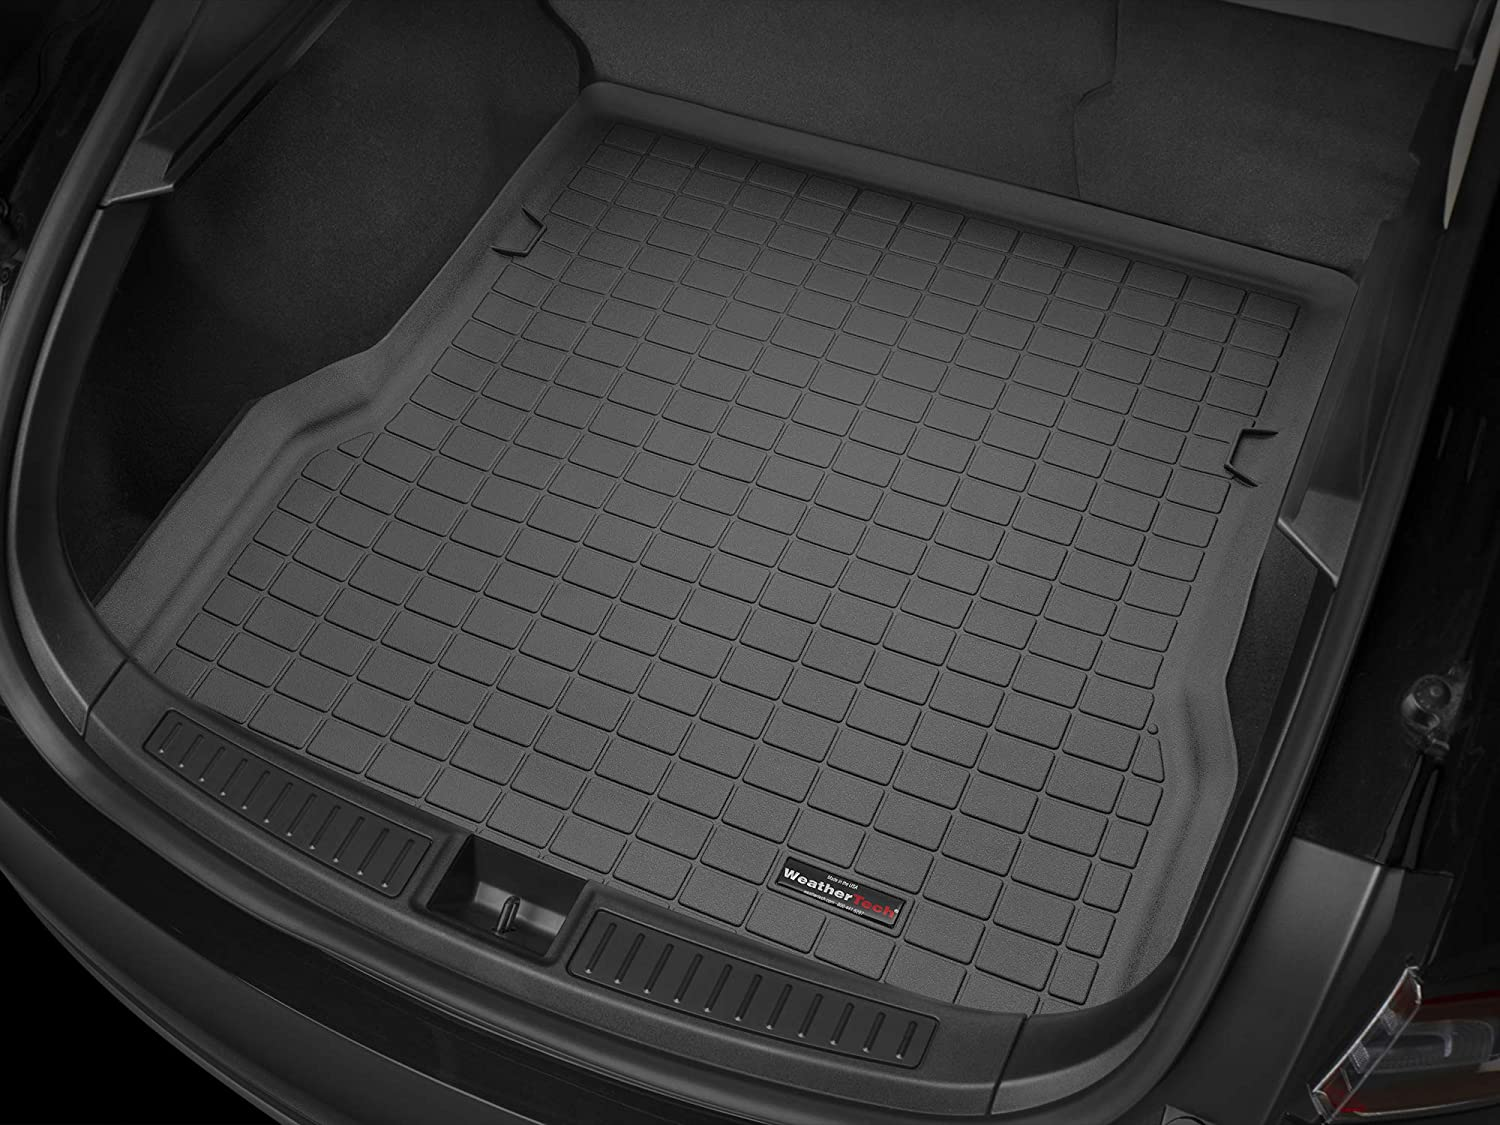 WeatherTech Custom 70% OFF Outlet Fit Cargo Liner Trunk Mat for Sonic Popular product Chevrolet